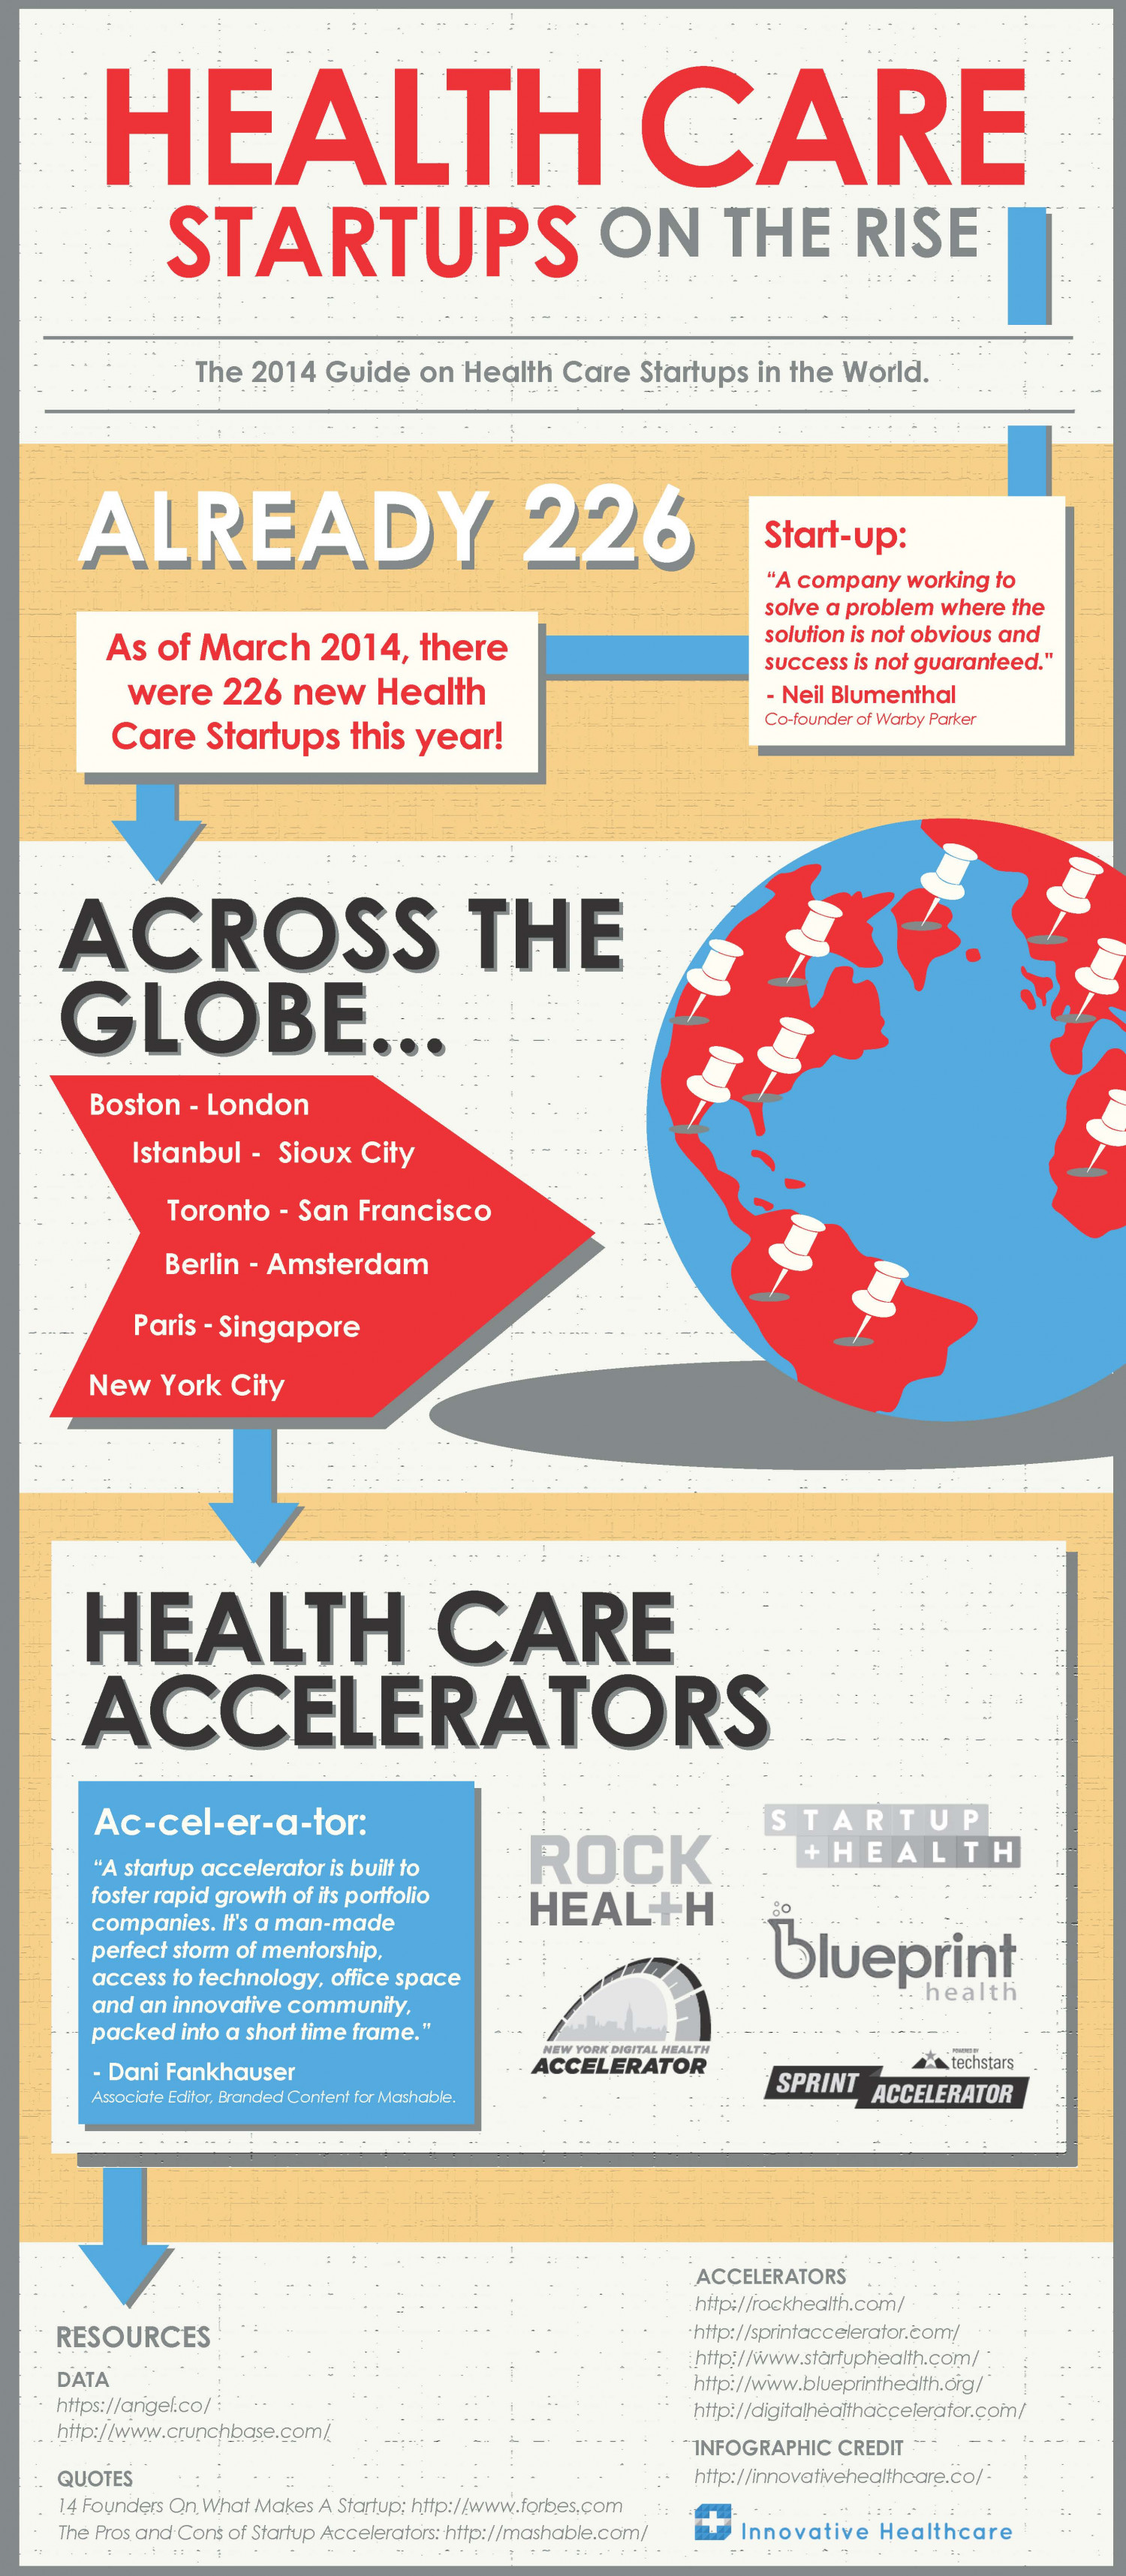 Health Care Startups on the Rise Infographic